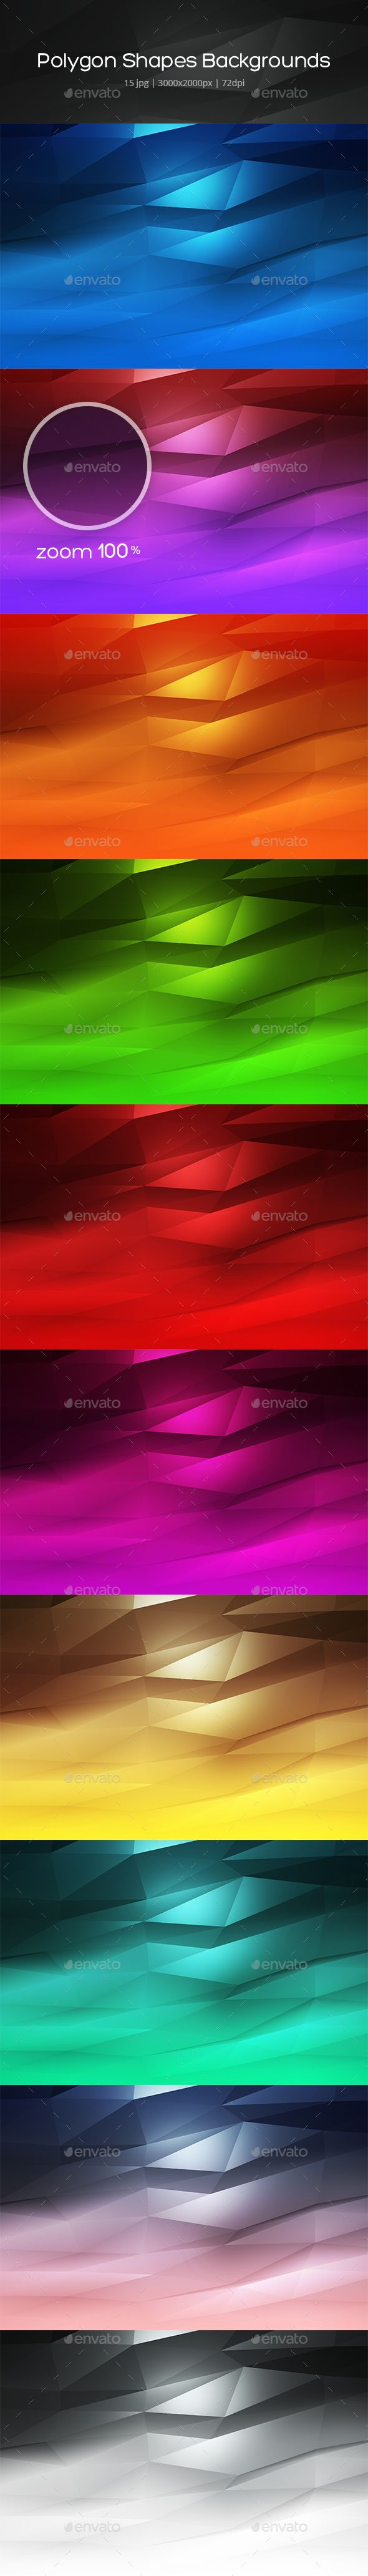 Polygon Shapes #Backgrounds - #Backgrounds #Graphics Download here:  https://graphicriver.net/item/polygon-shapes-backgrounds/20402154?ref=alena994